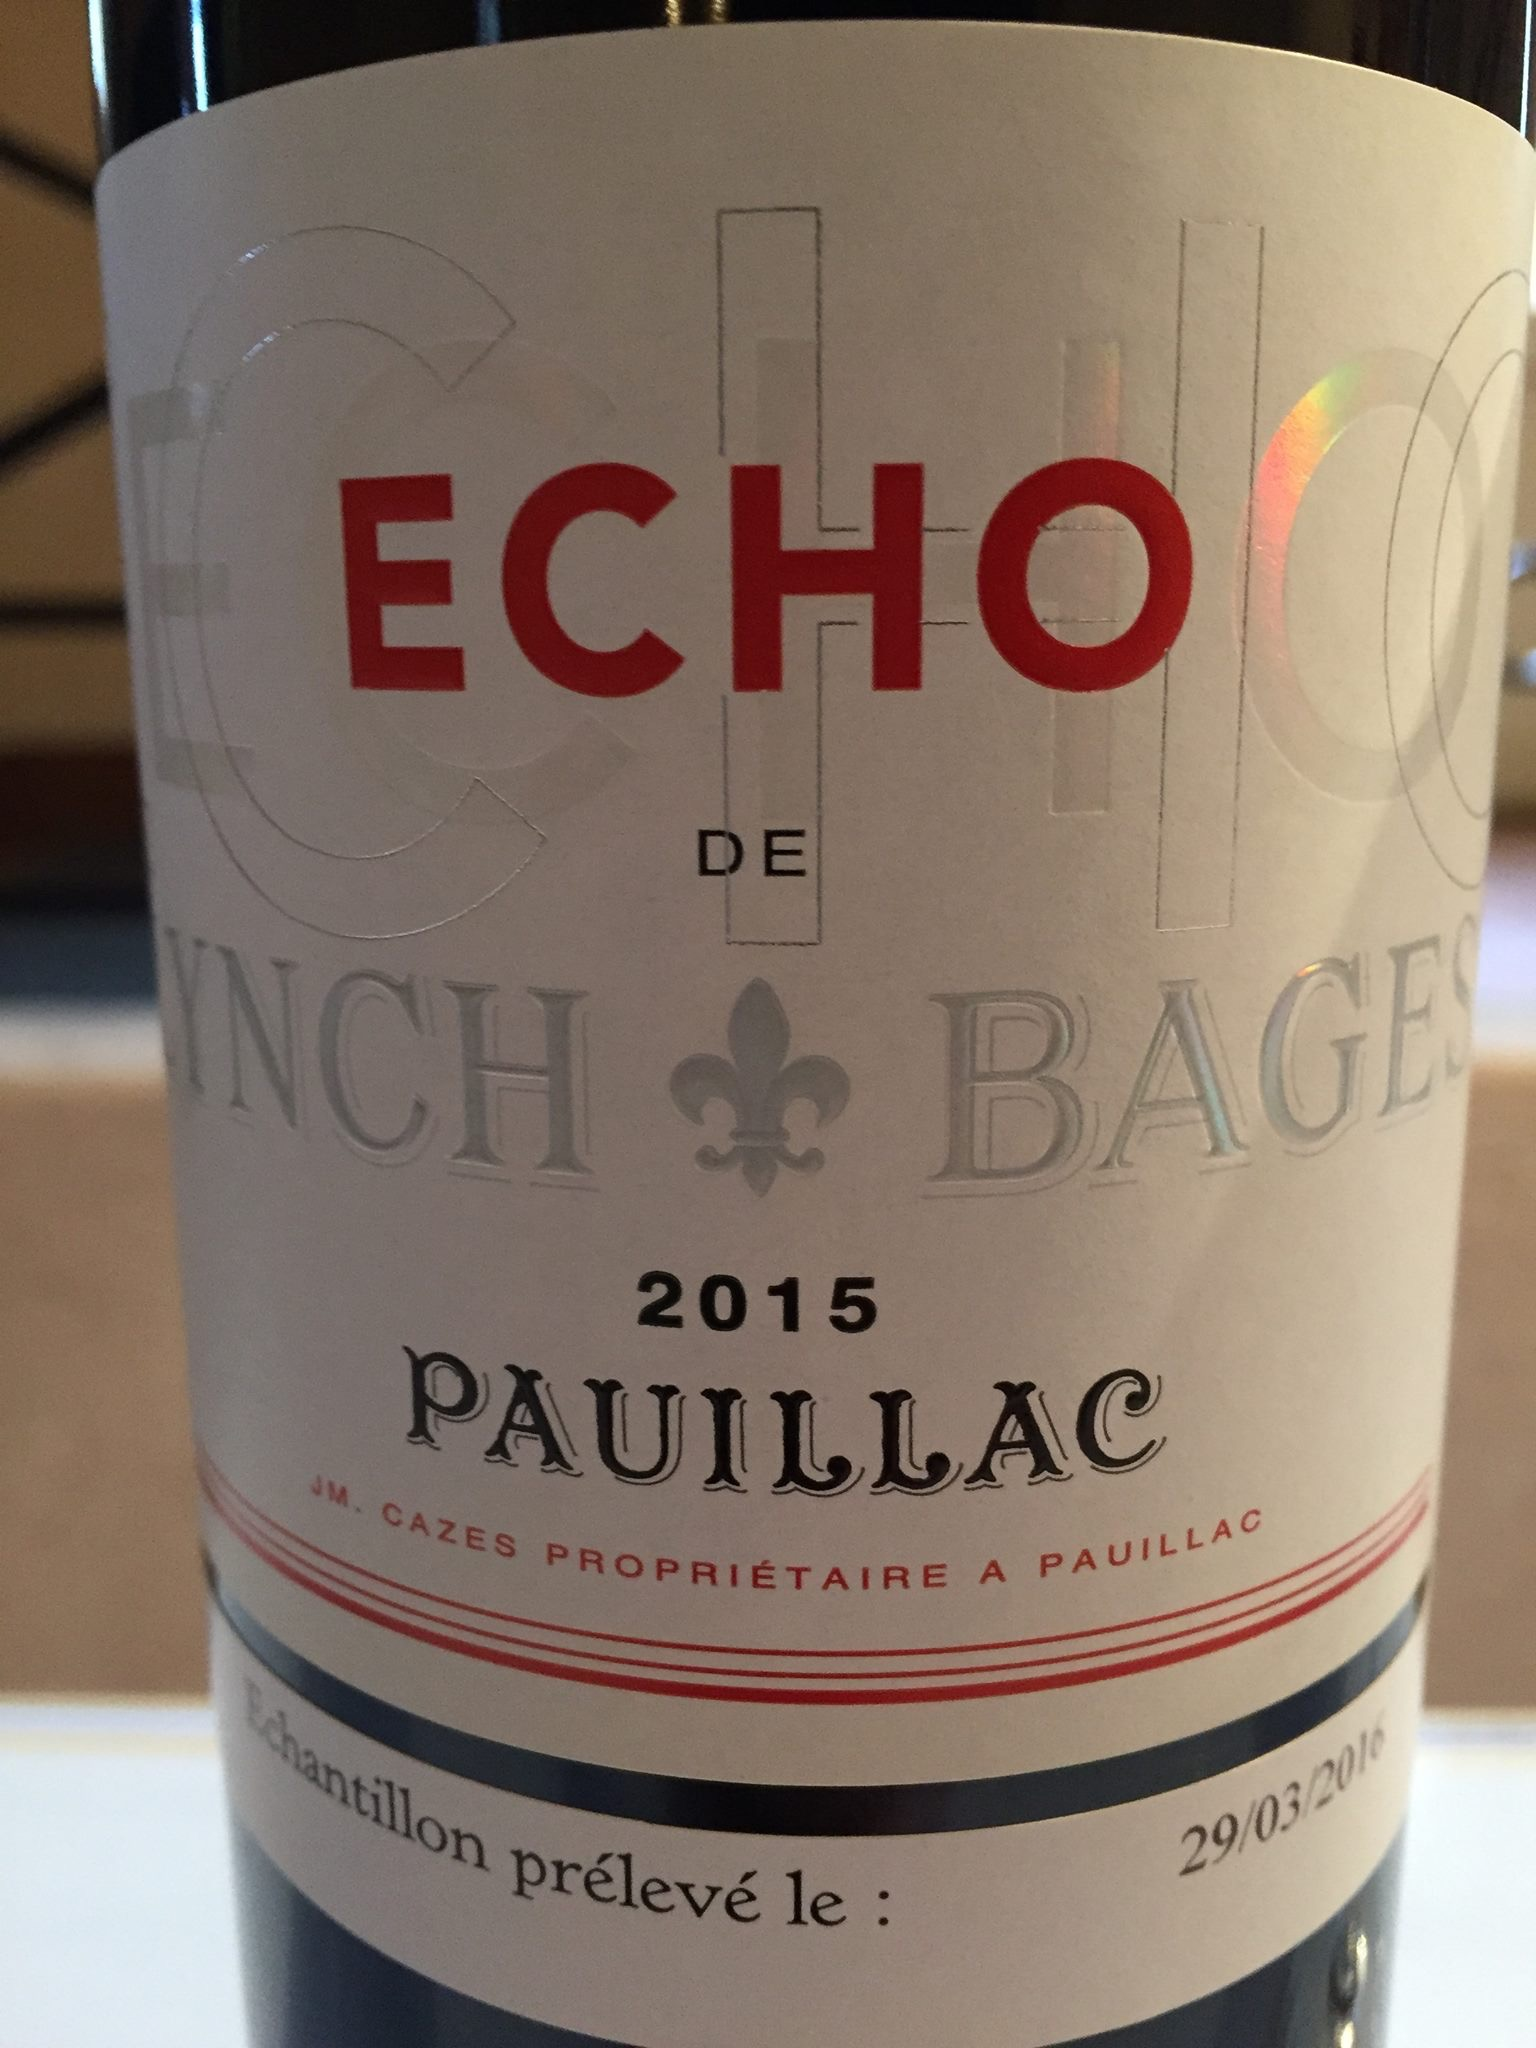 Echo de Lynch Bages 2015 – Pauillac